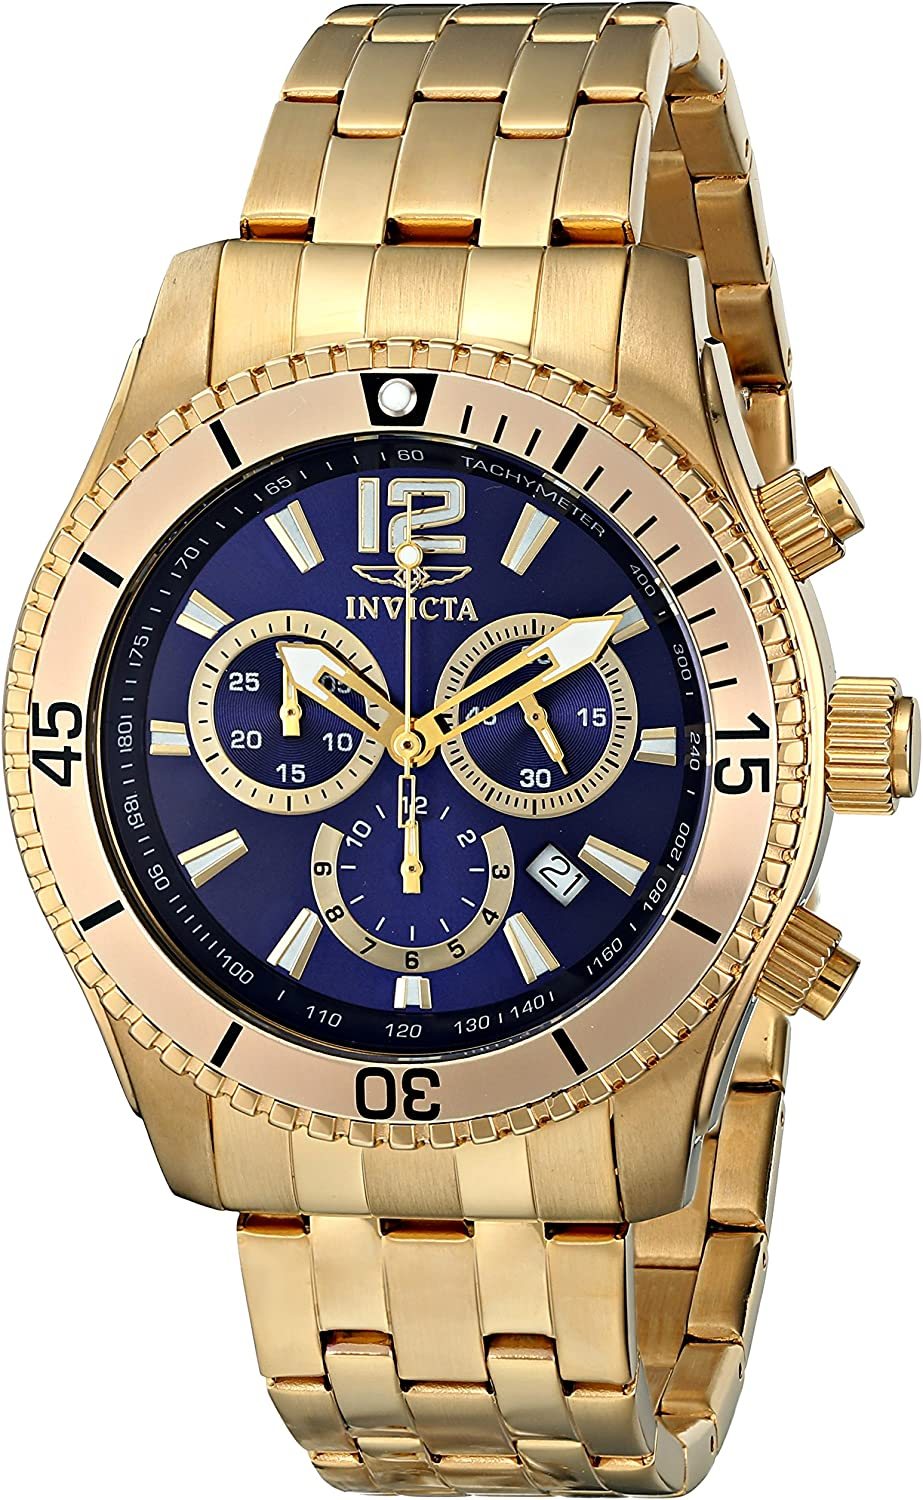 Invicta Men s II Collection Chronograph 18k Gold-Plated Stainless Steel Watch